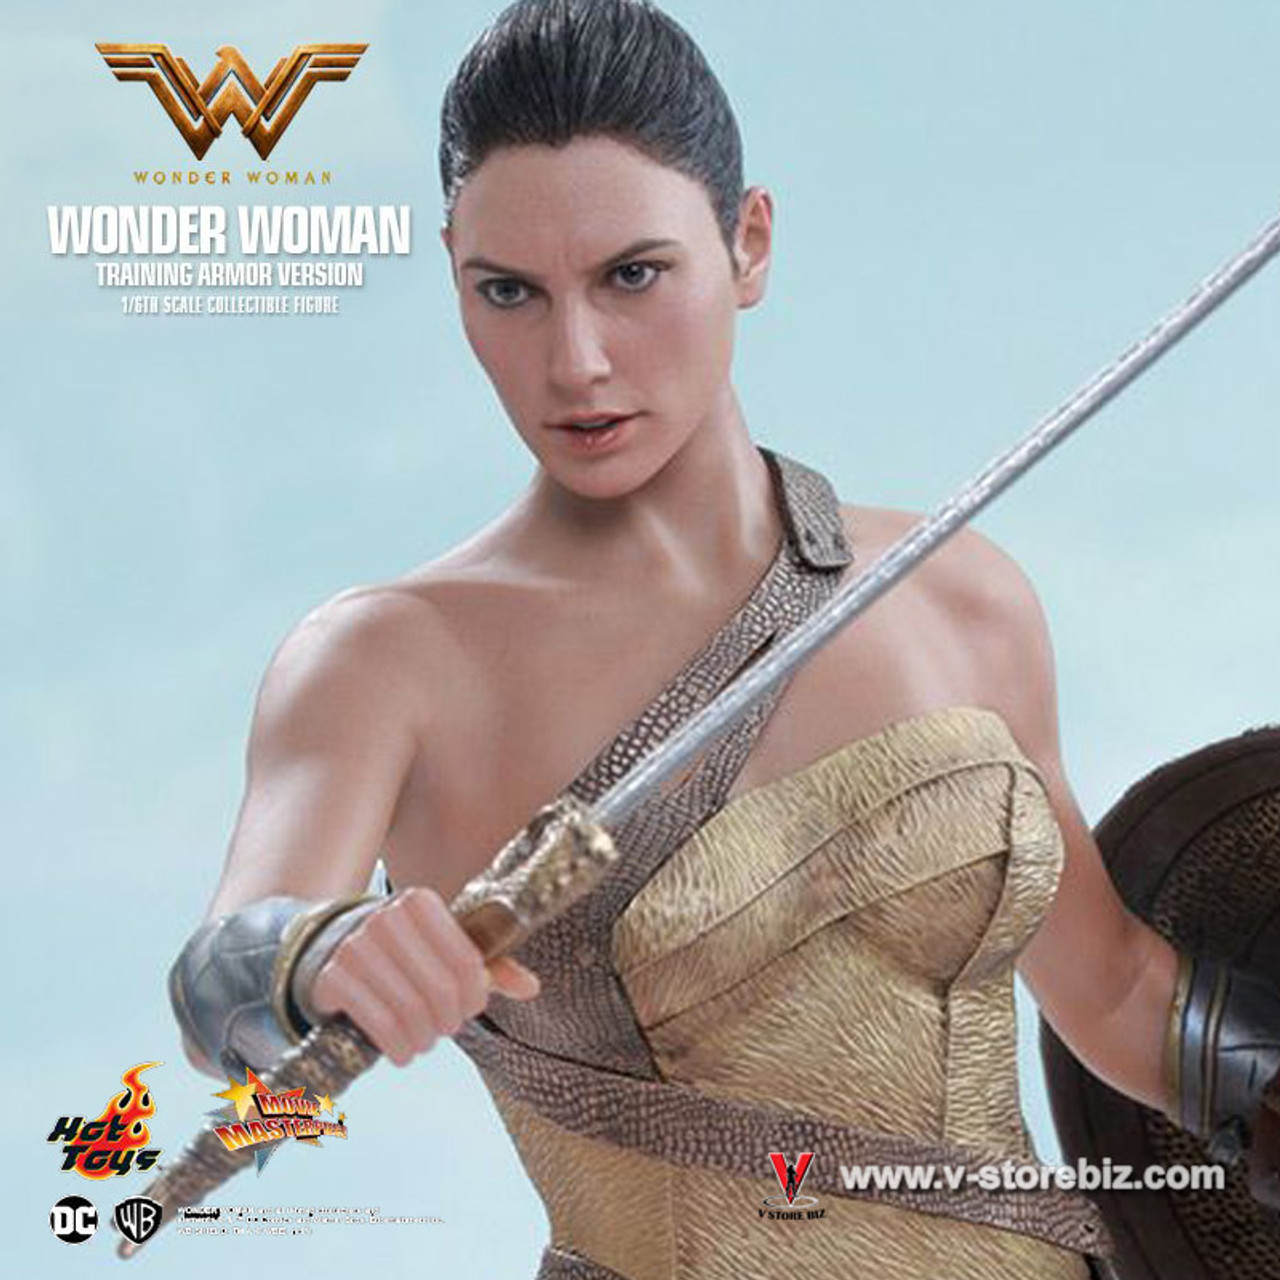 Hot Toys MMS424 Wonder Woman Gal Gadot Training Armor Version Figure Sword Stand